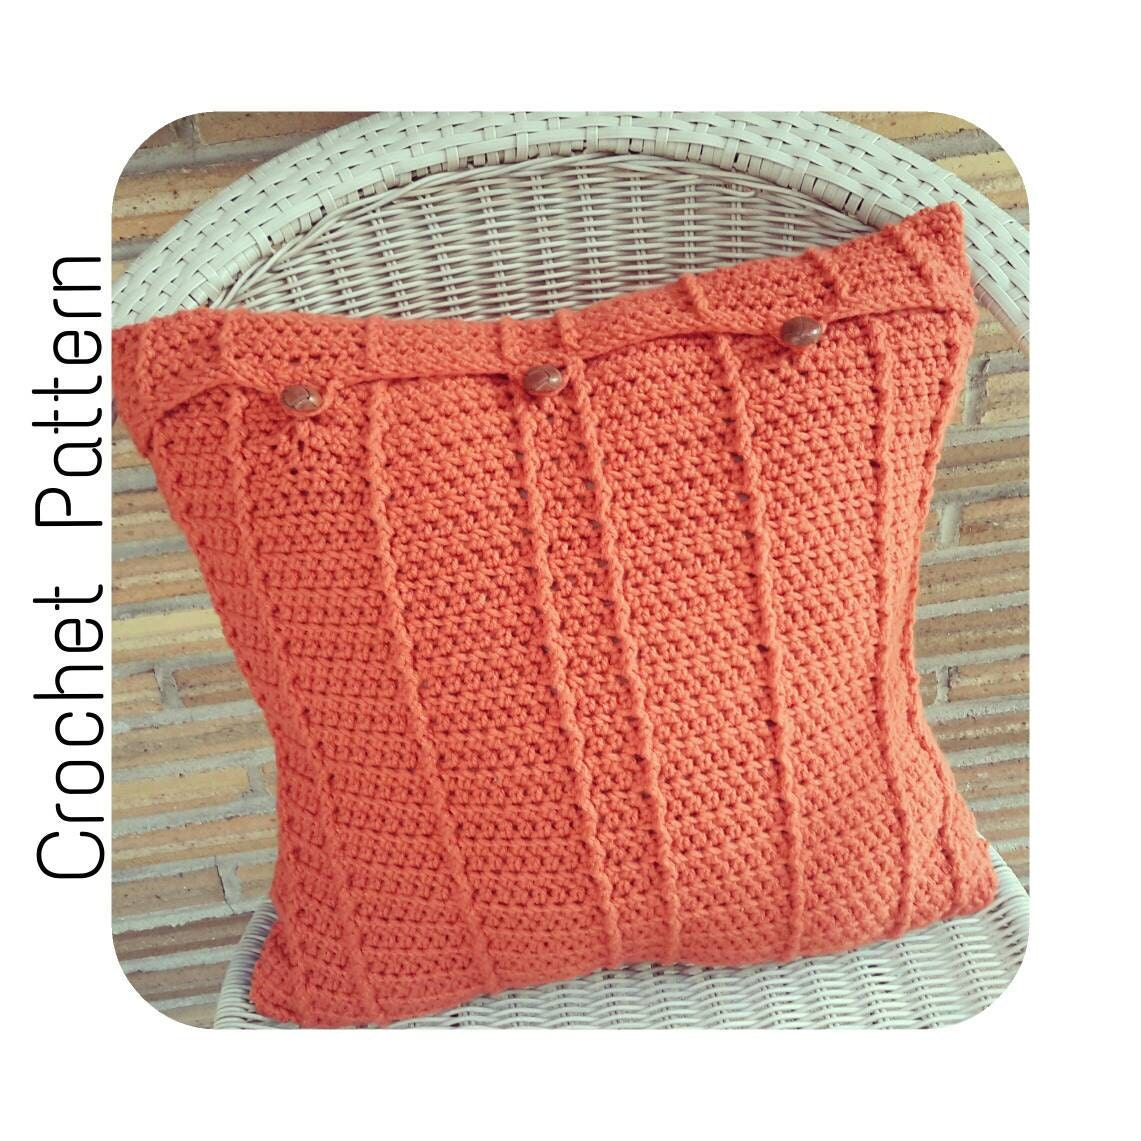 Throw Pillow Case Pattern : Crochet PATTERN Throw Pillow Cover Crochet by ...